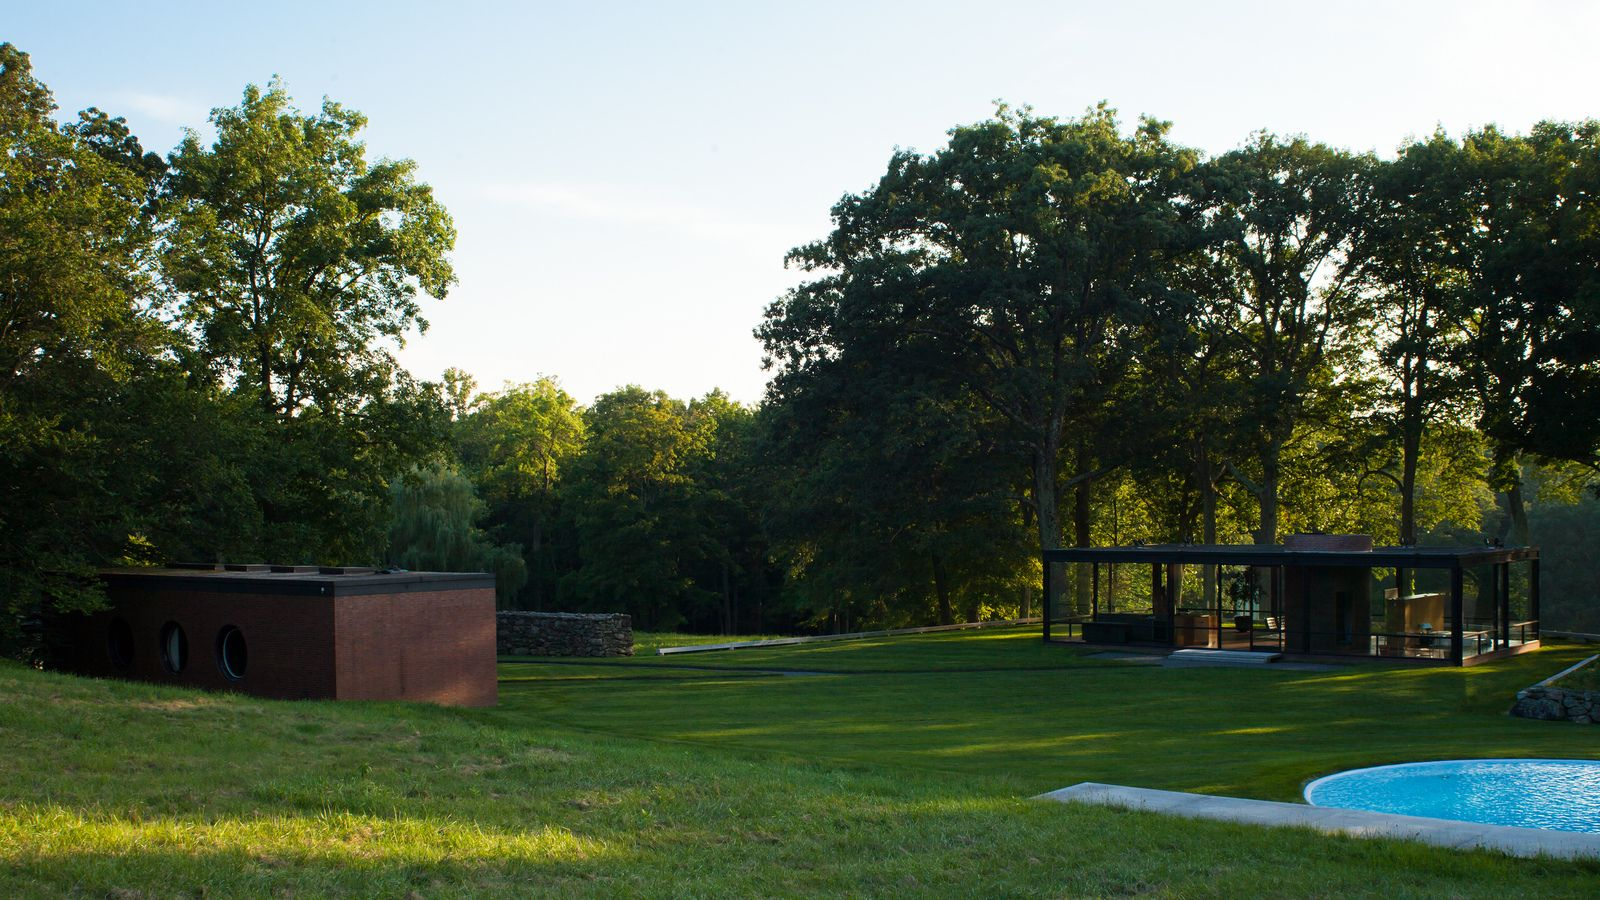 new canaan - glass house by Addison Godel